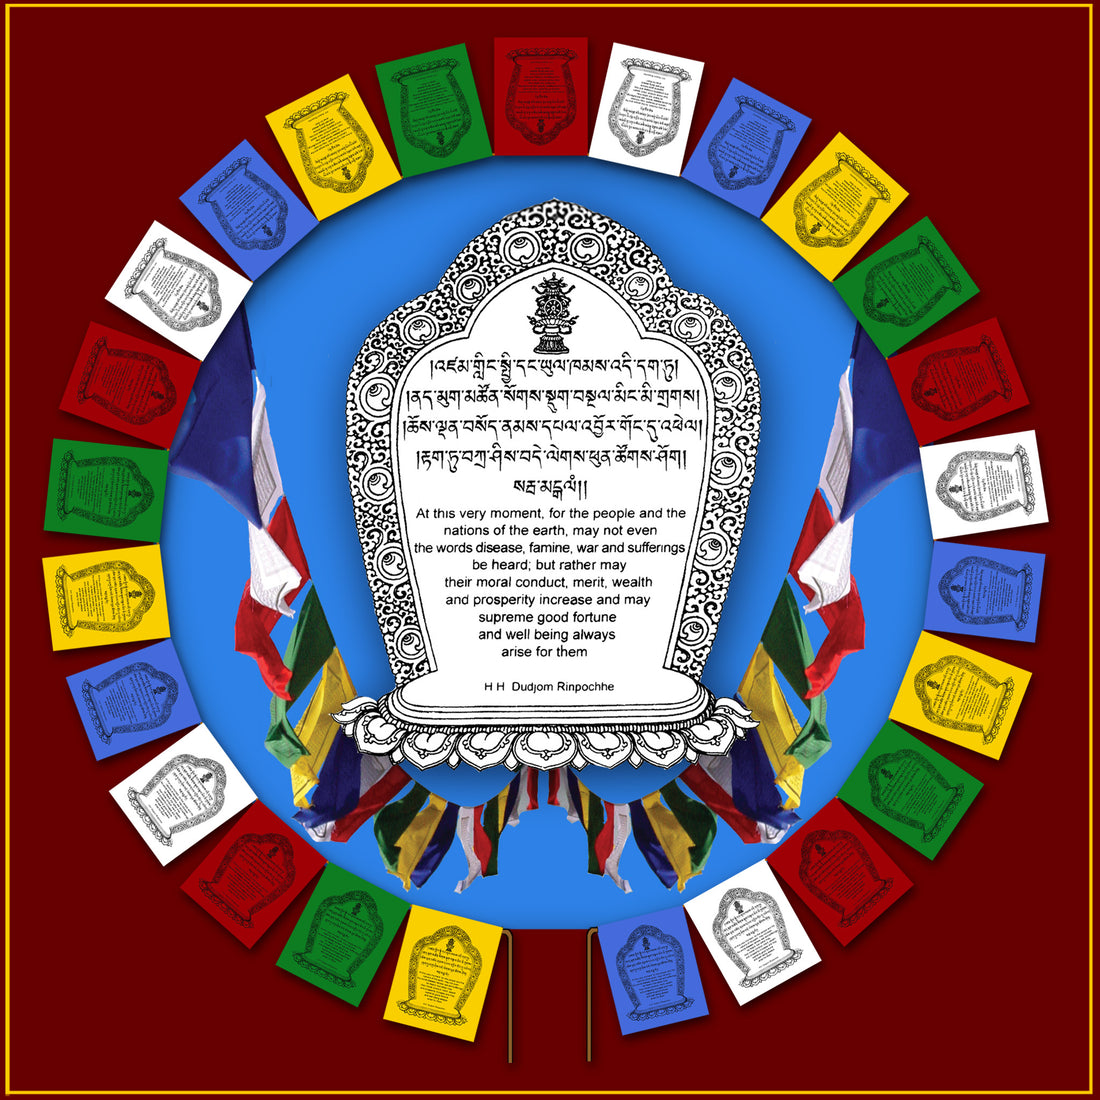 World Peace Prayer Flag Sets - Twenty-five World Peace Flags on a rope